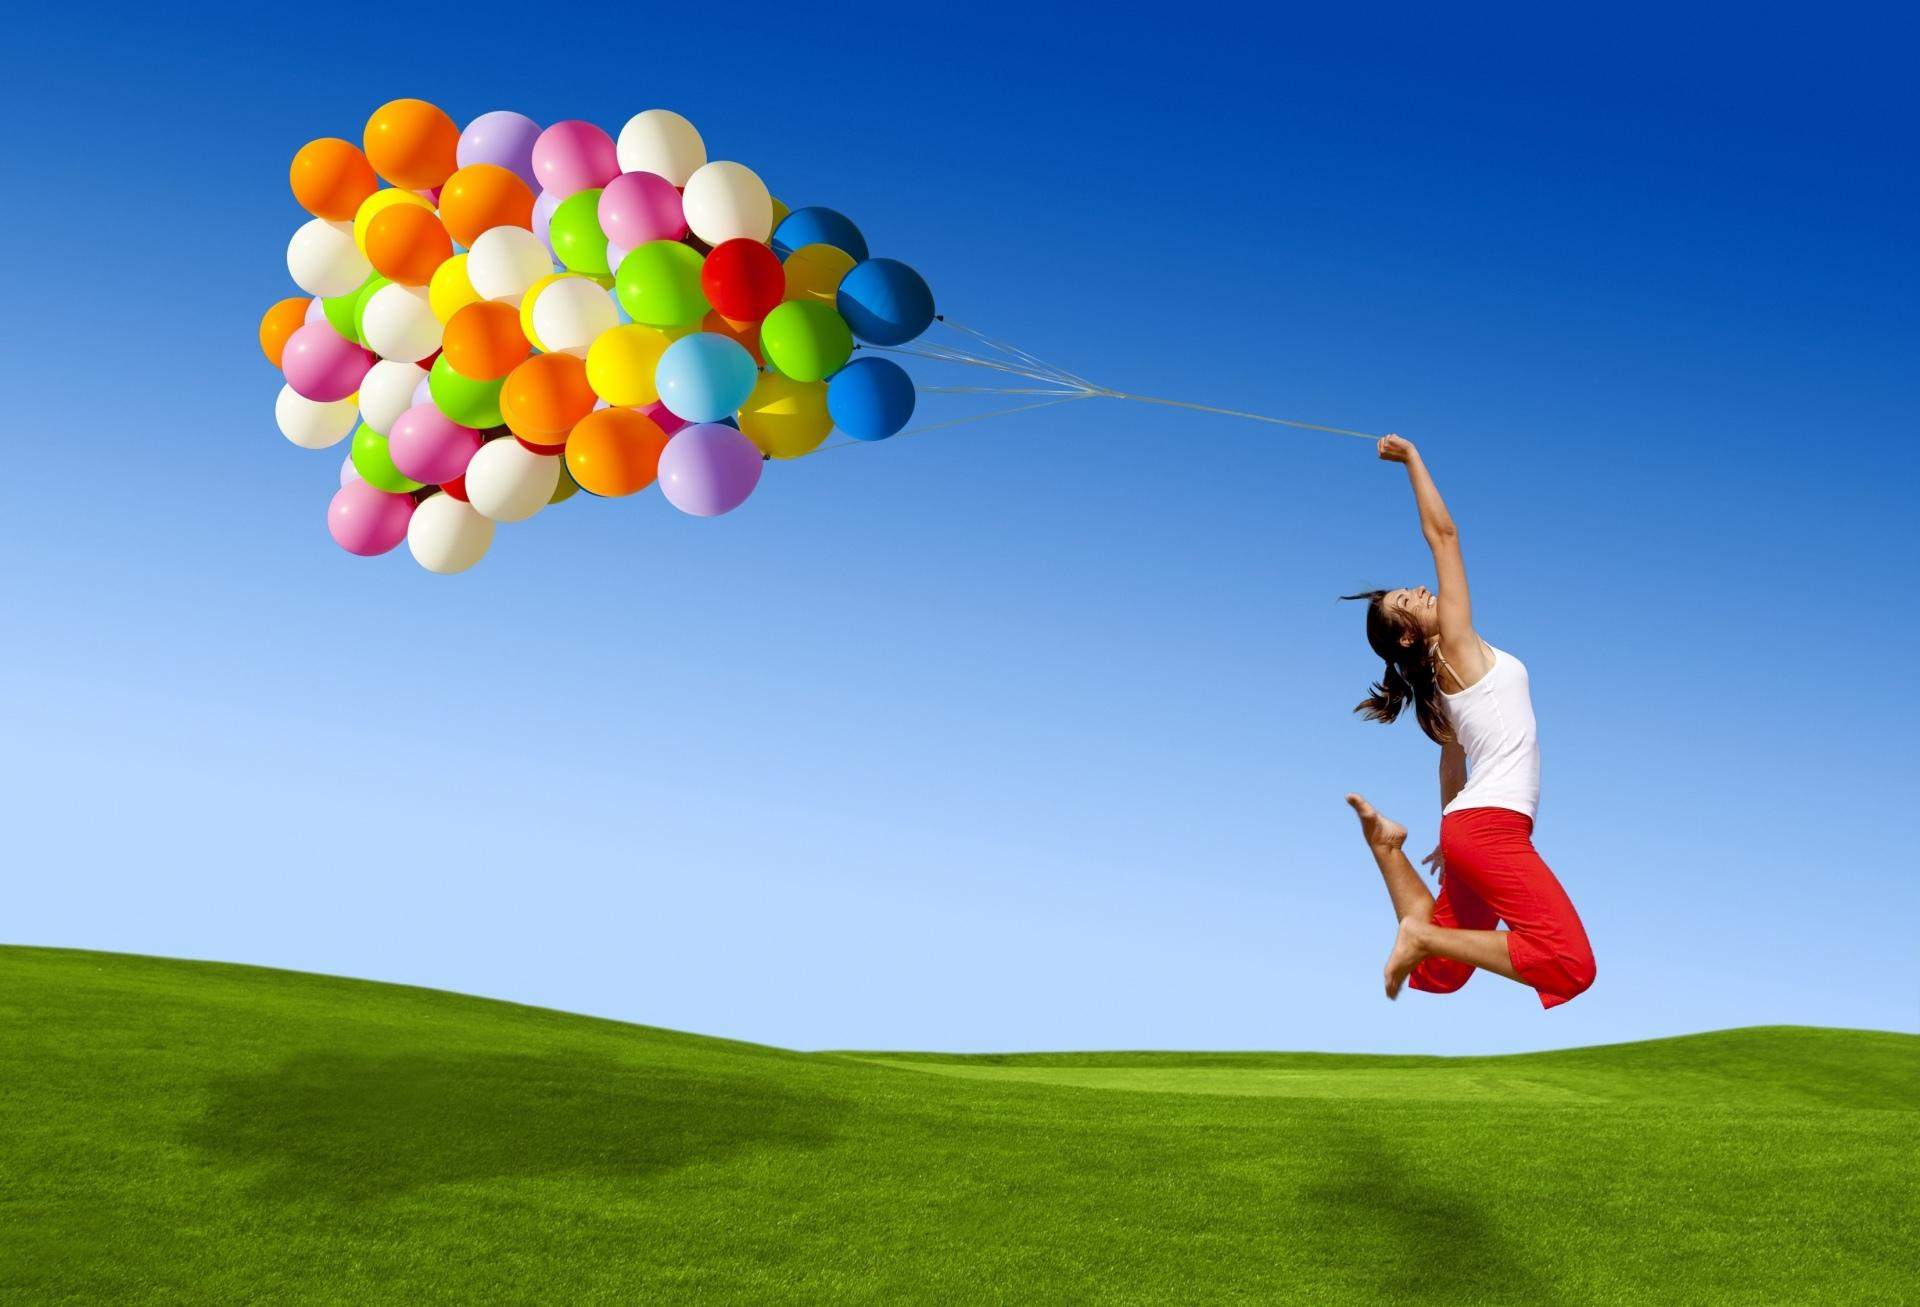 Balloon Photography wallpapers HD quality